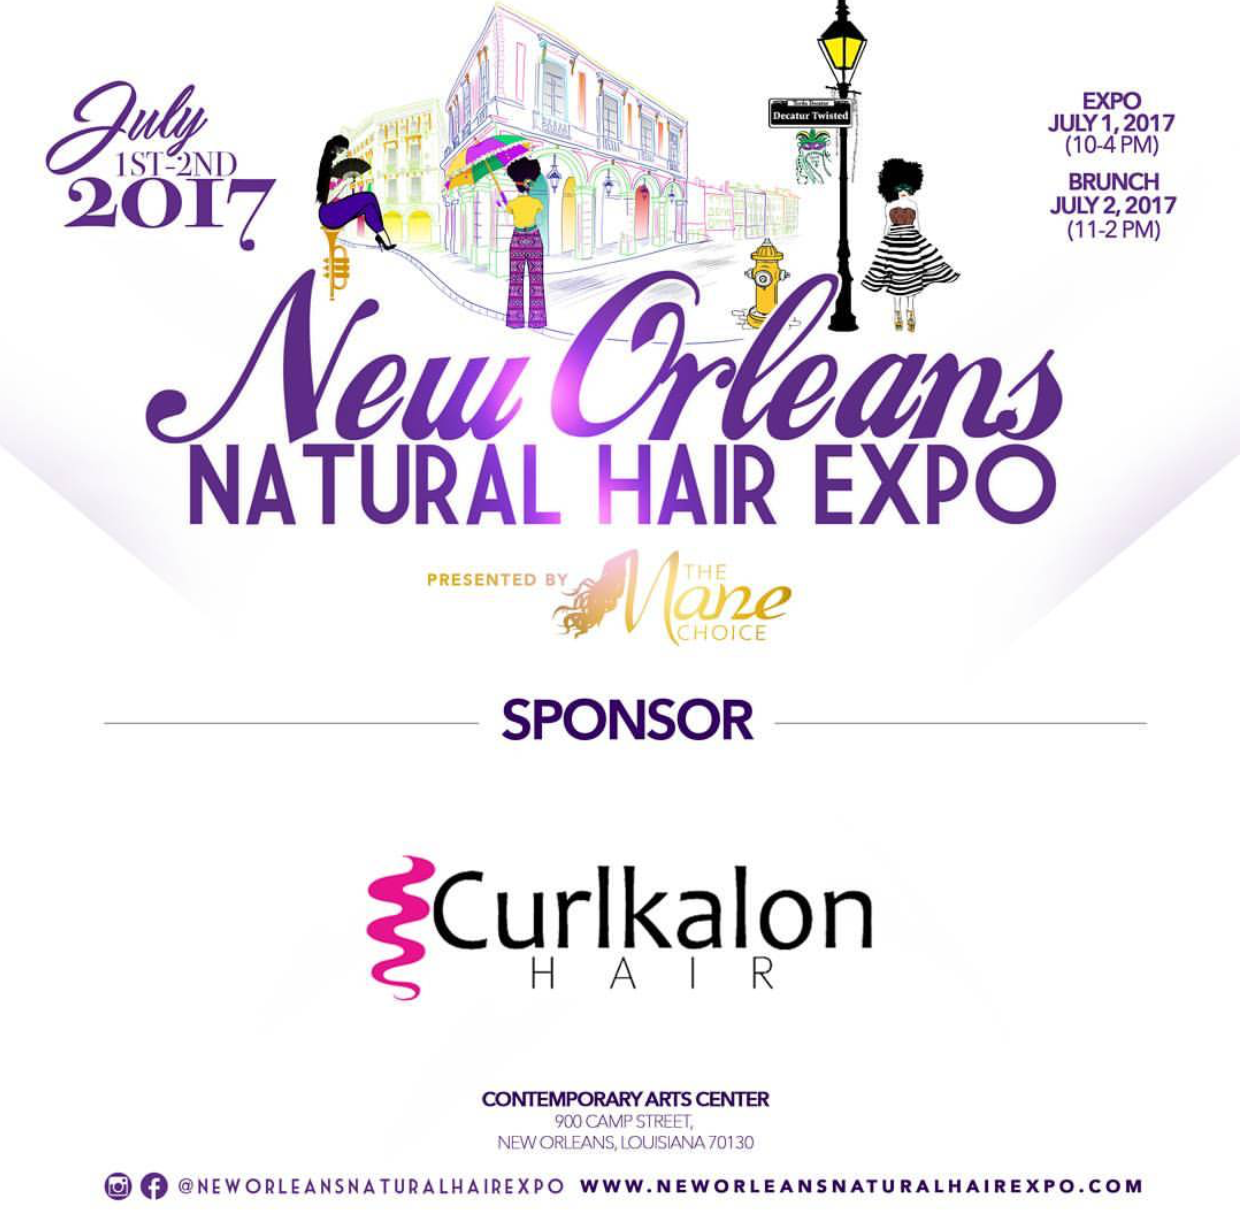 New Orleans Natural Hair Expo